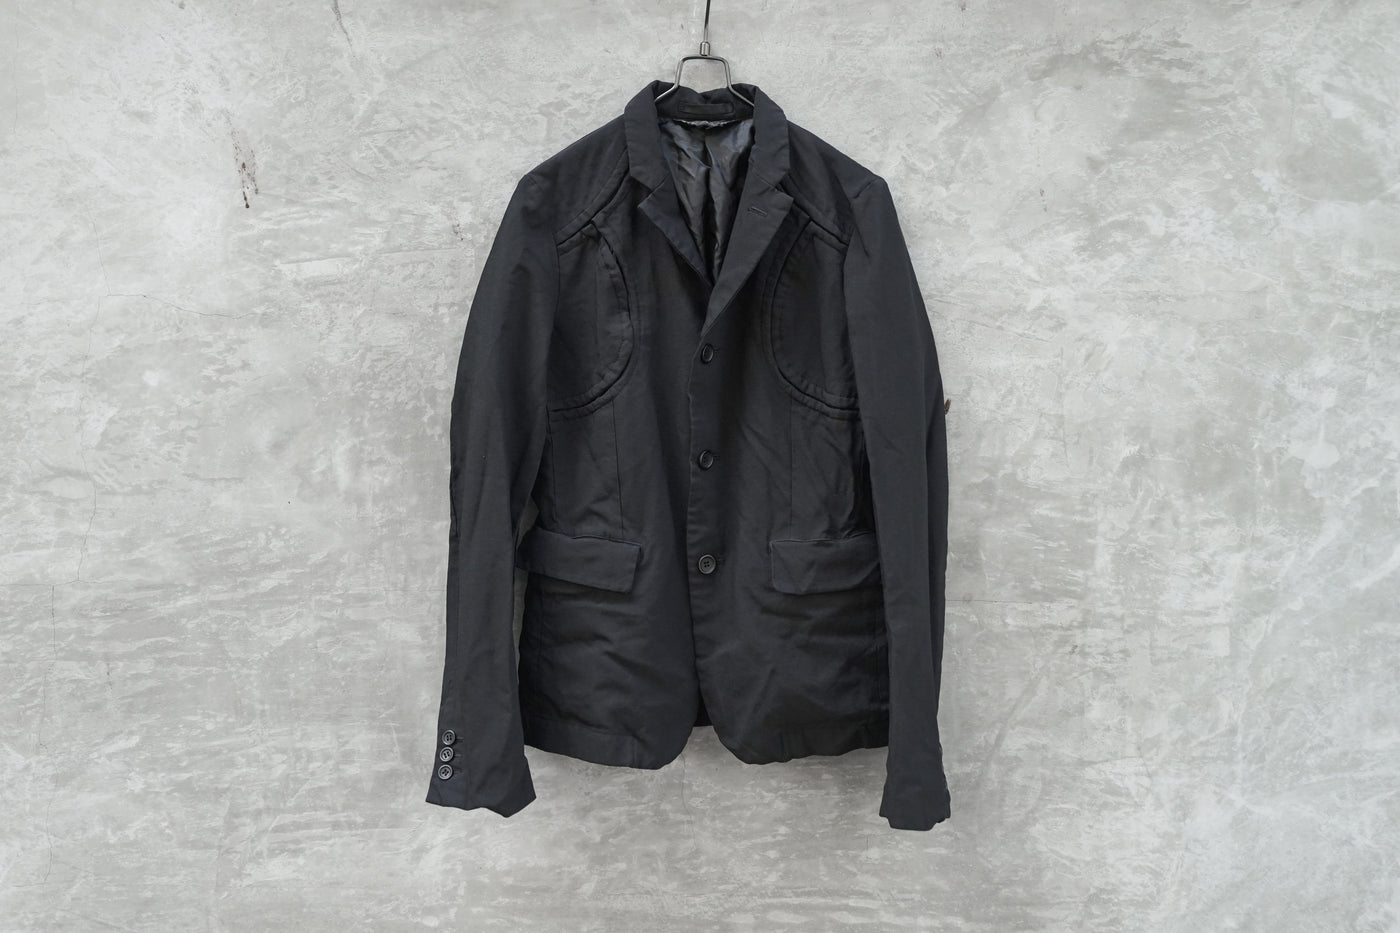 BLACK Comme Des Garcons Black Cut Line and Patchwork Details Jacket AD2015 - OKURA